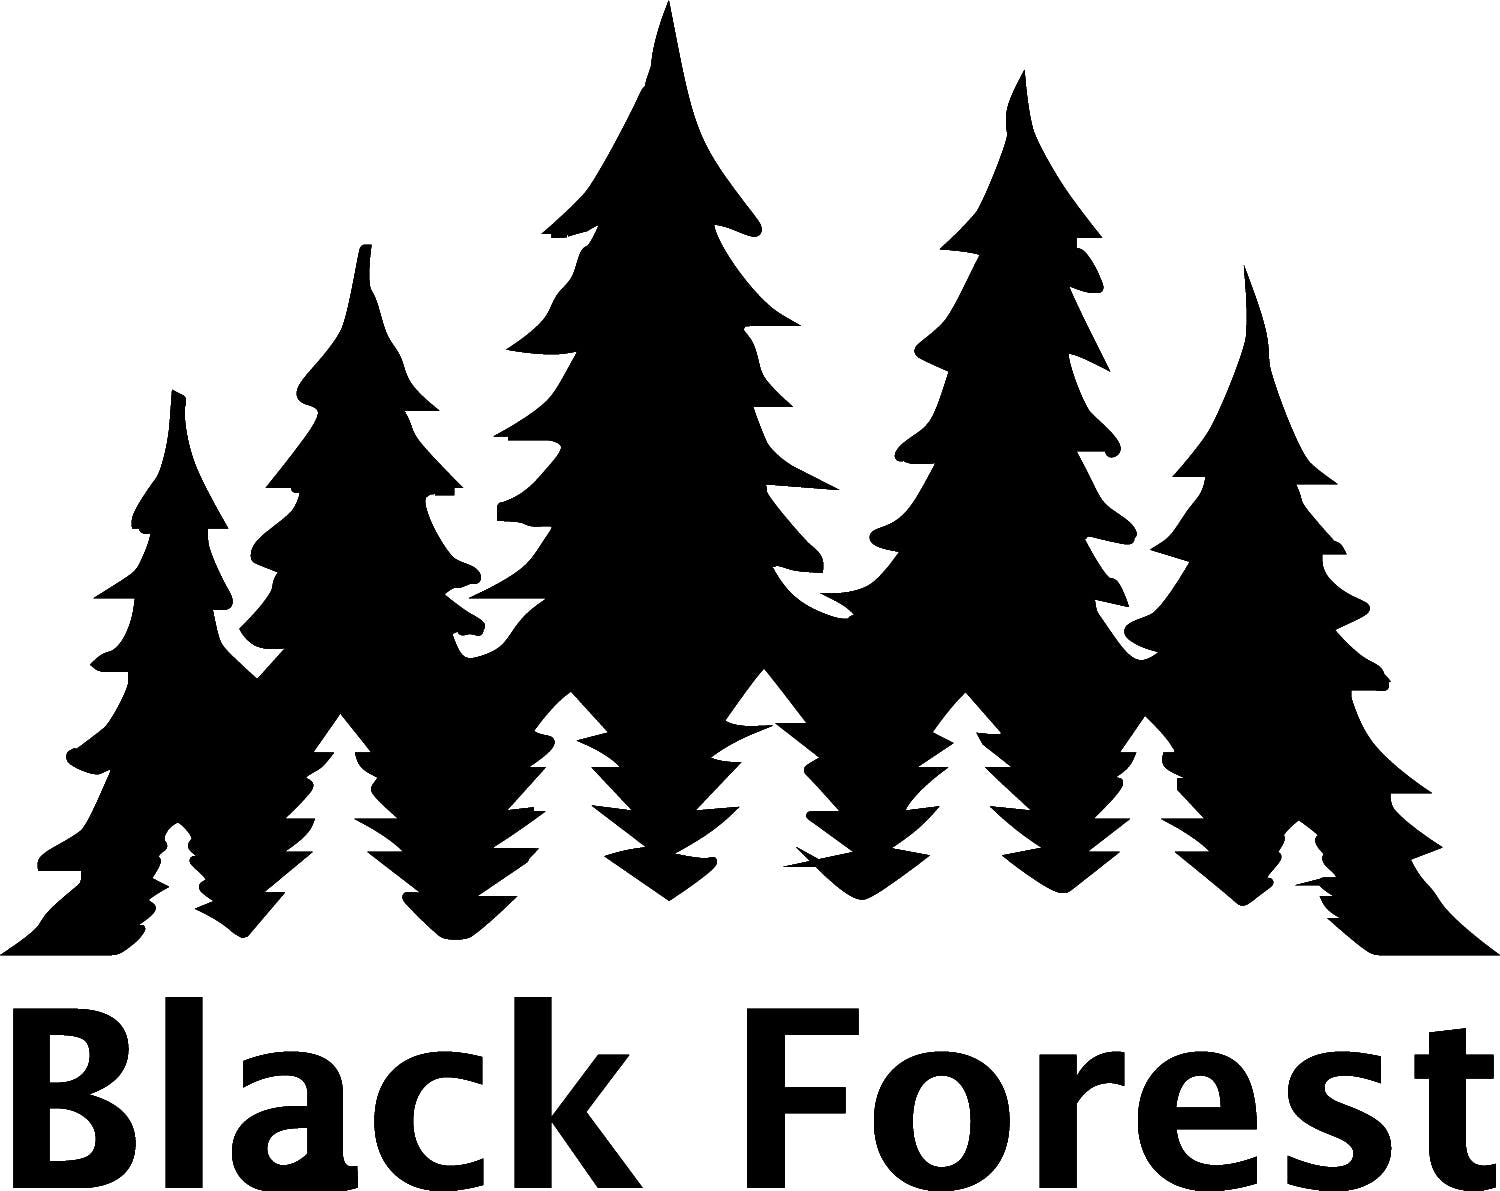 Black Forest Container Systems, LLC